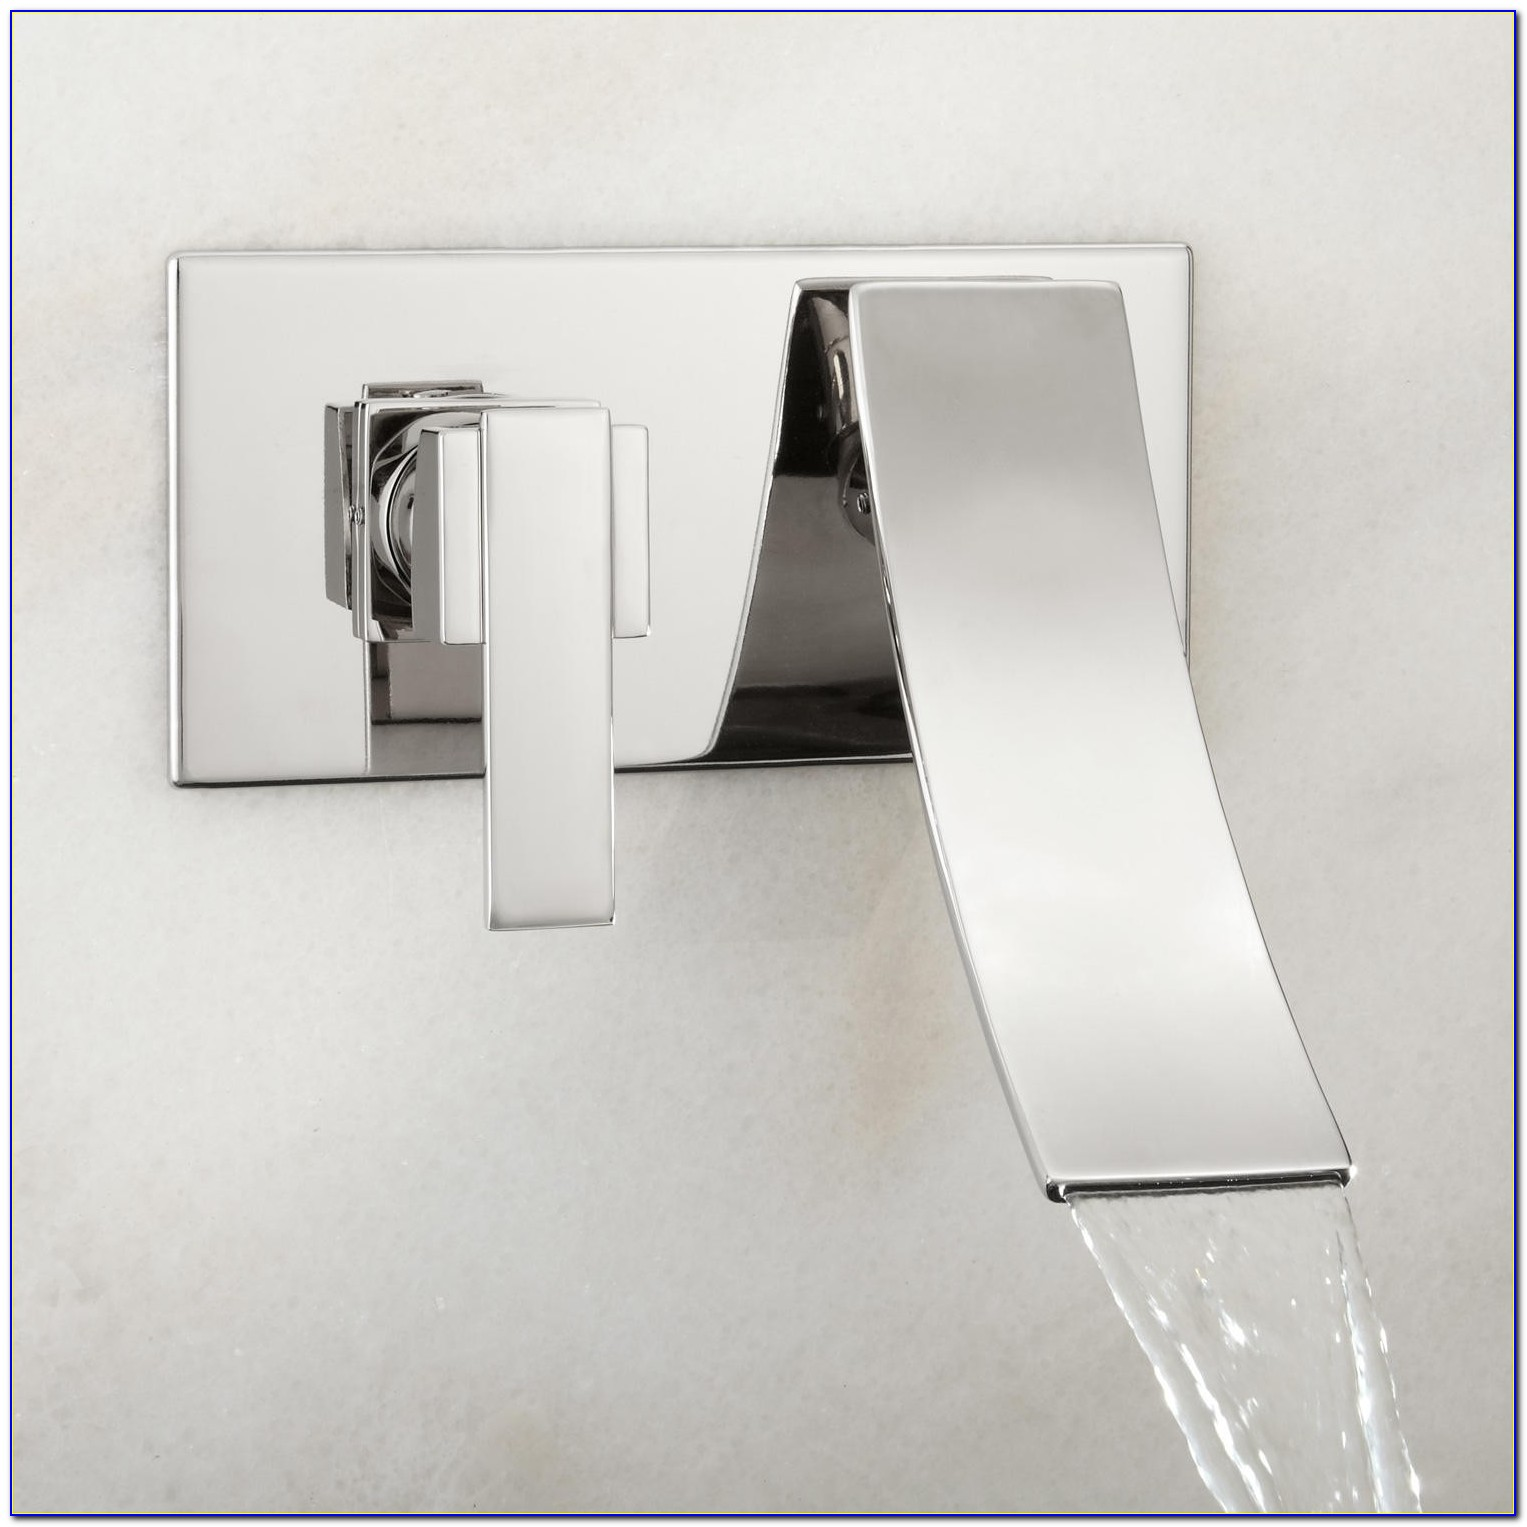 Wall Mount Bathroom Sink Faucet Canada